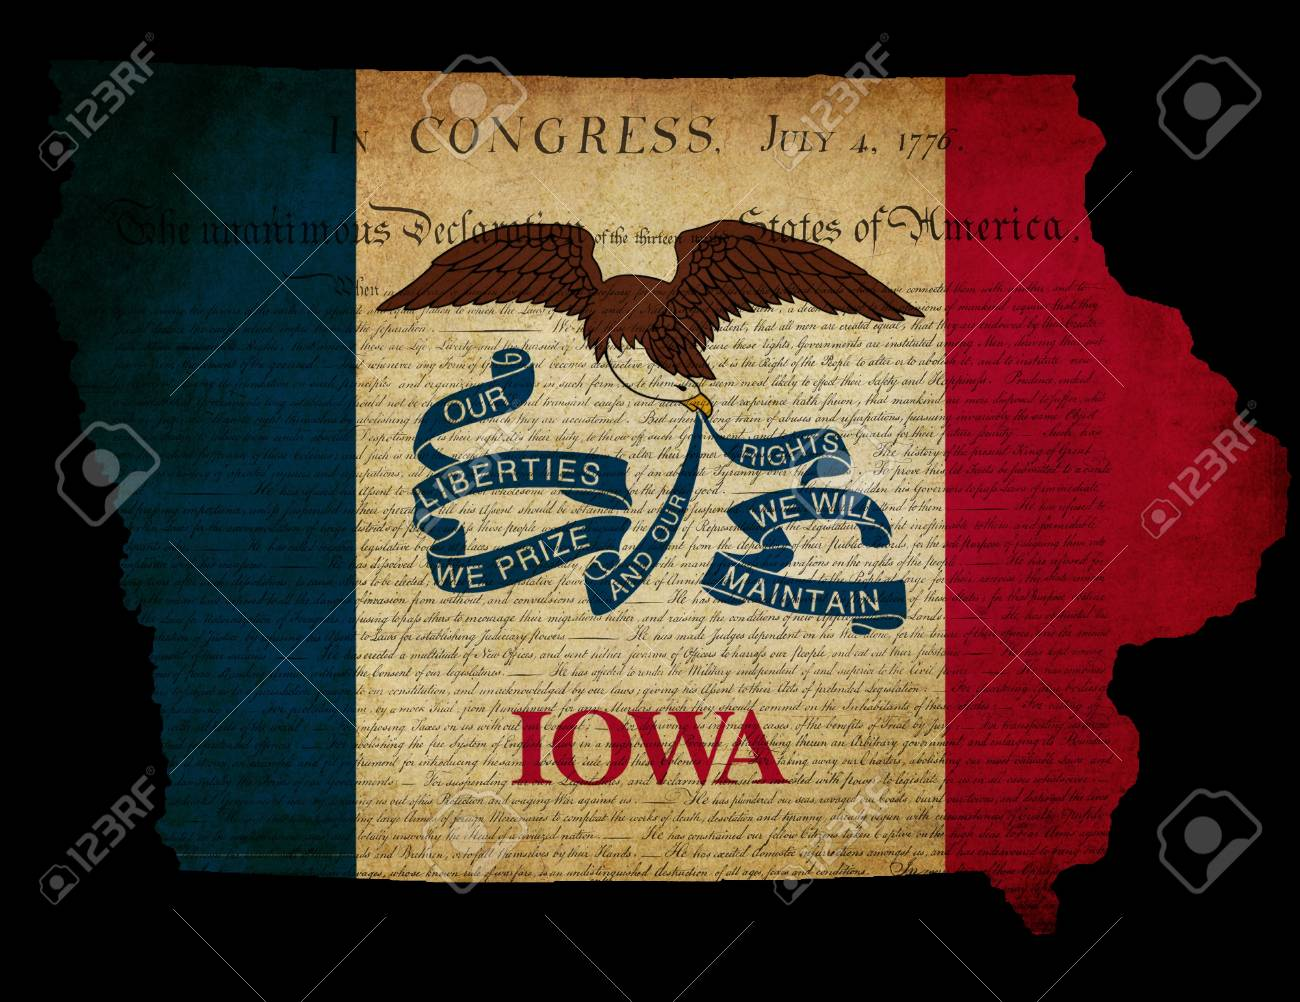 Outline of American USA Iowa state with grunge effect flag insert and overlay of Declaration of Independence document Stock Photo - 13387229